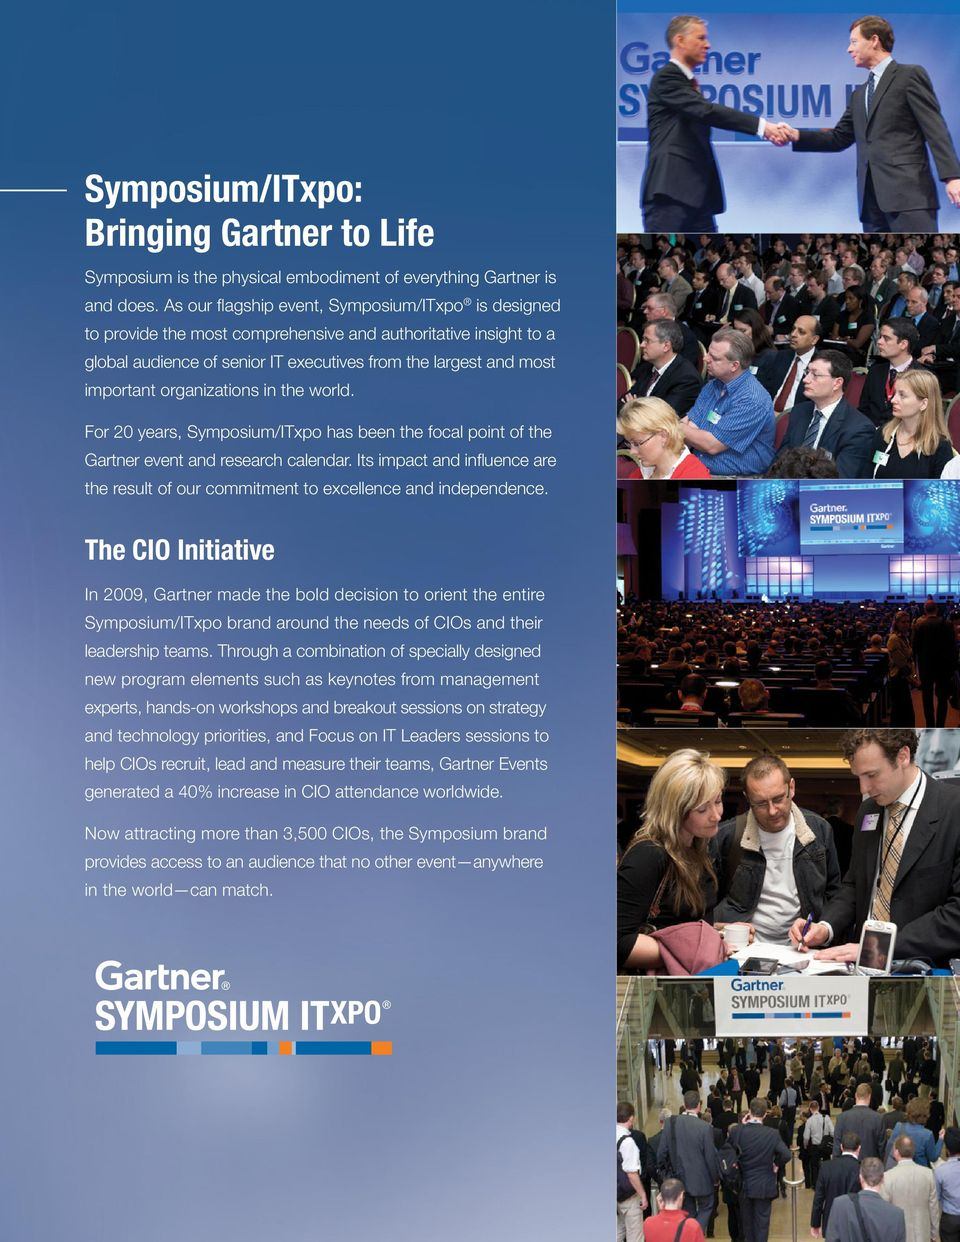 organizations in the world. For 20 years, Symposium/ITxpo has been the focal point of the Gartner event and research calendar.